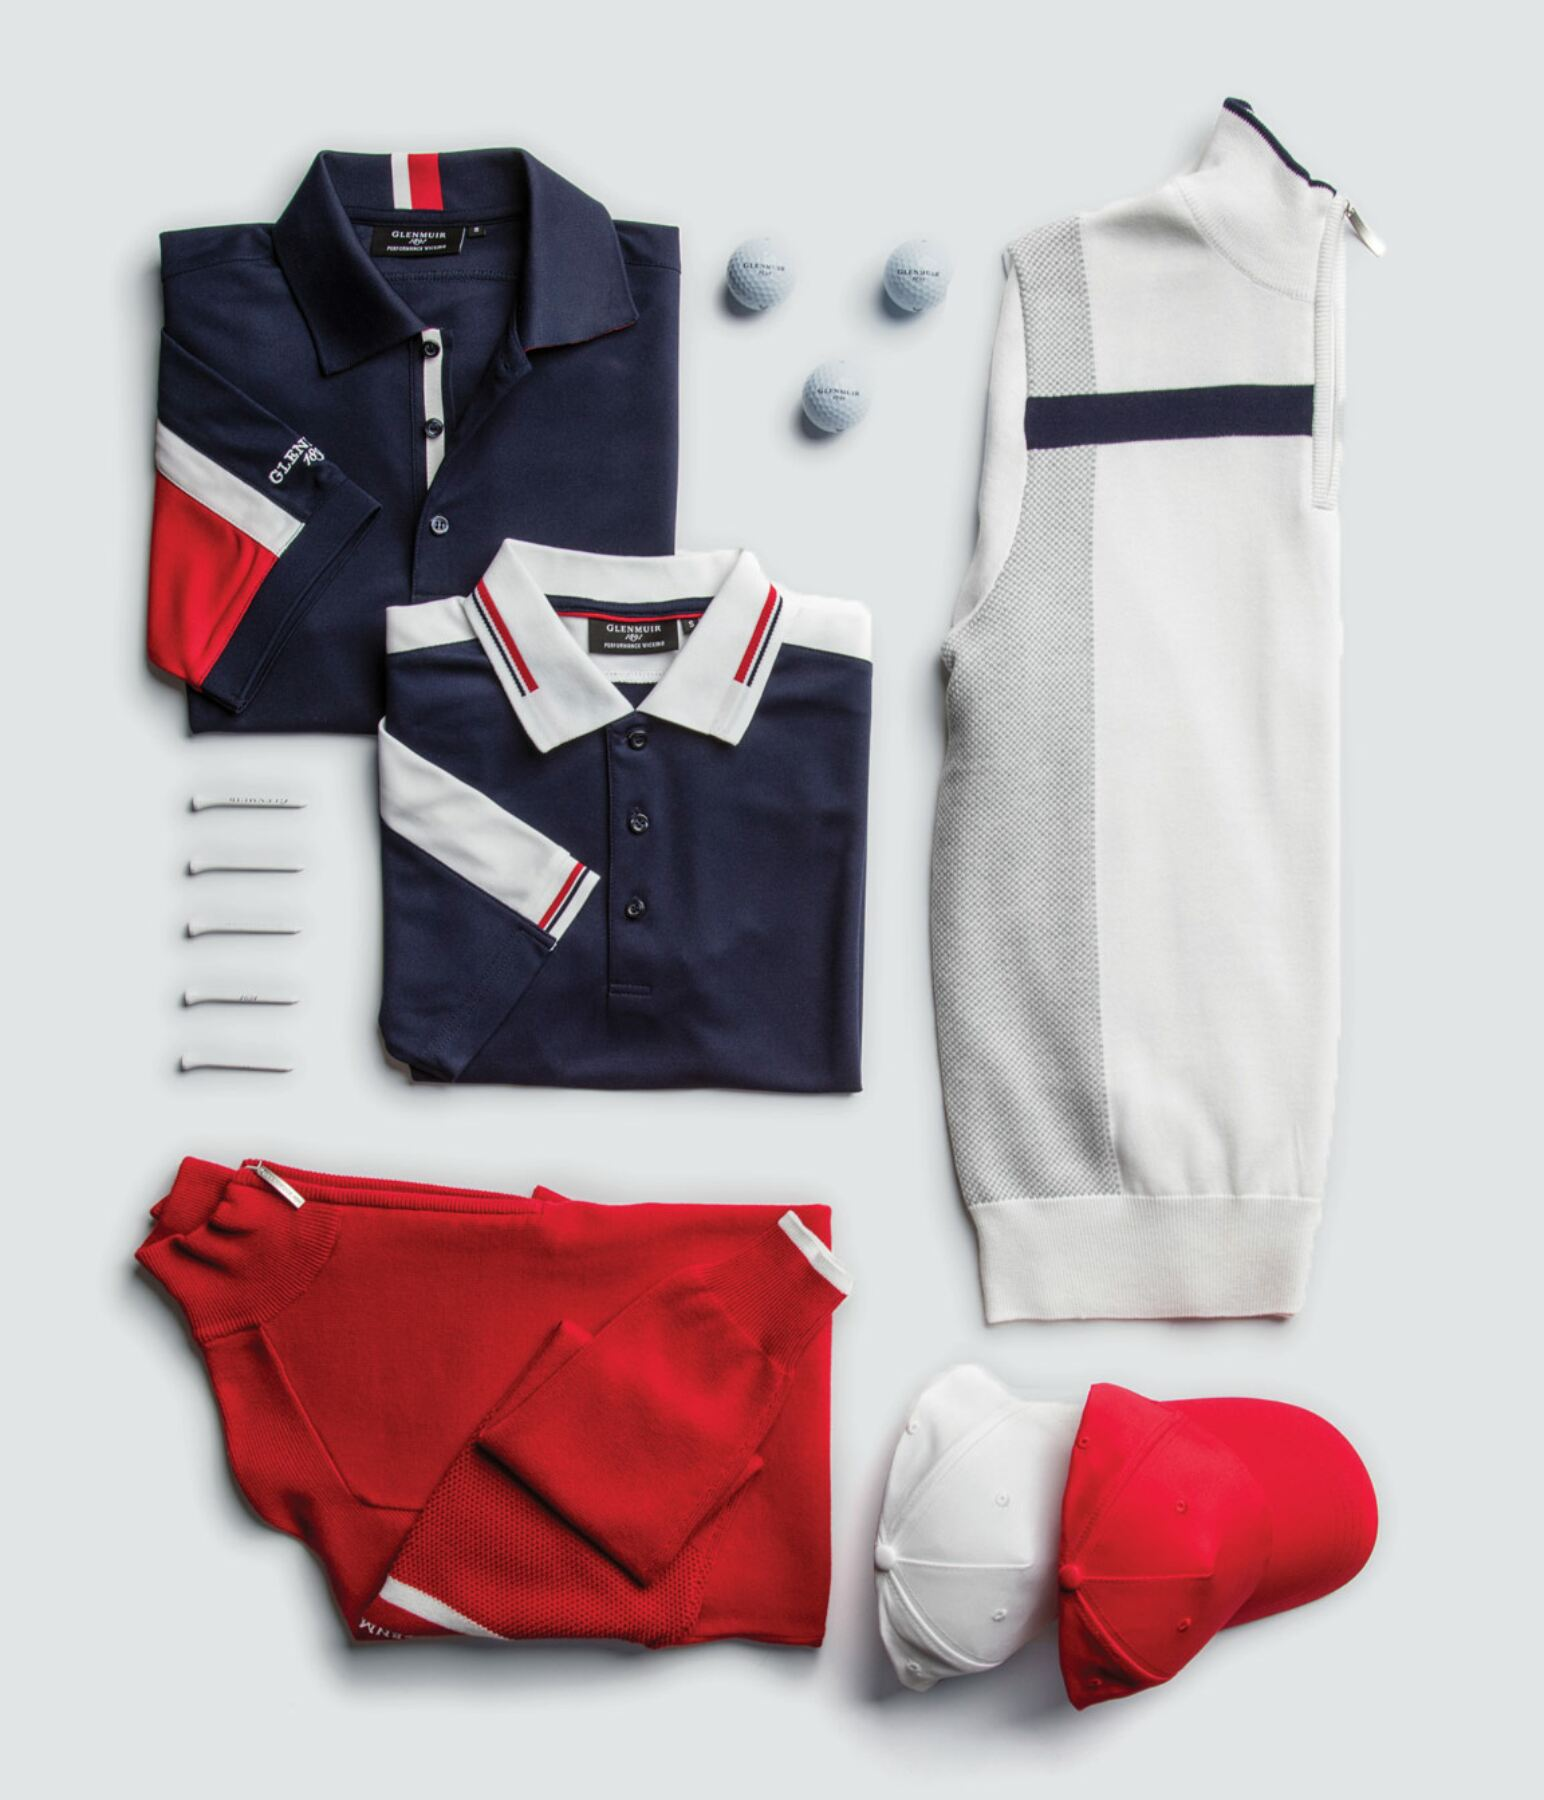 STYLE ON-COURSE WITH COORDINATED OUTFITS